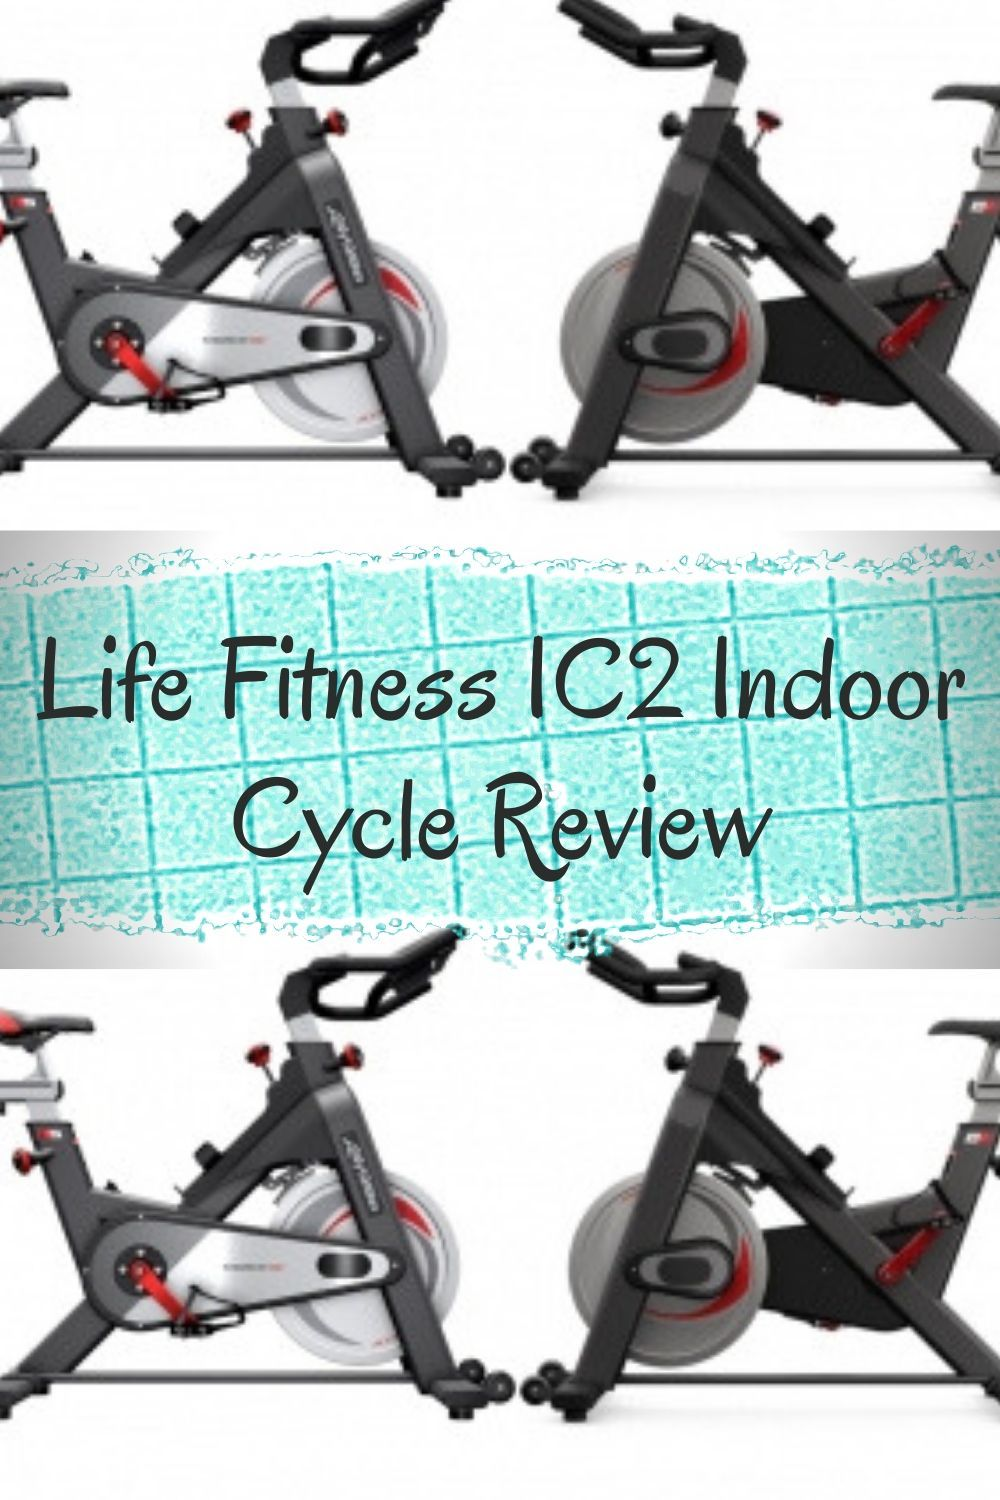 Life Fitness Ic2 Indoor Cycle Review Fit Life Biking Workout Fitness